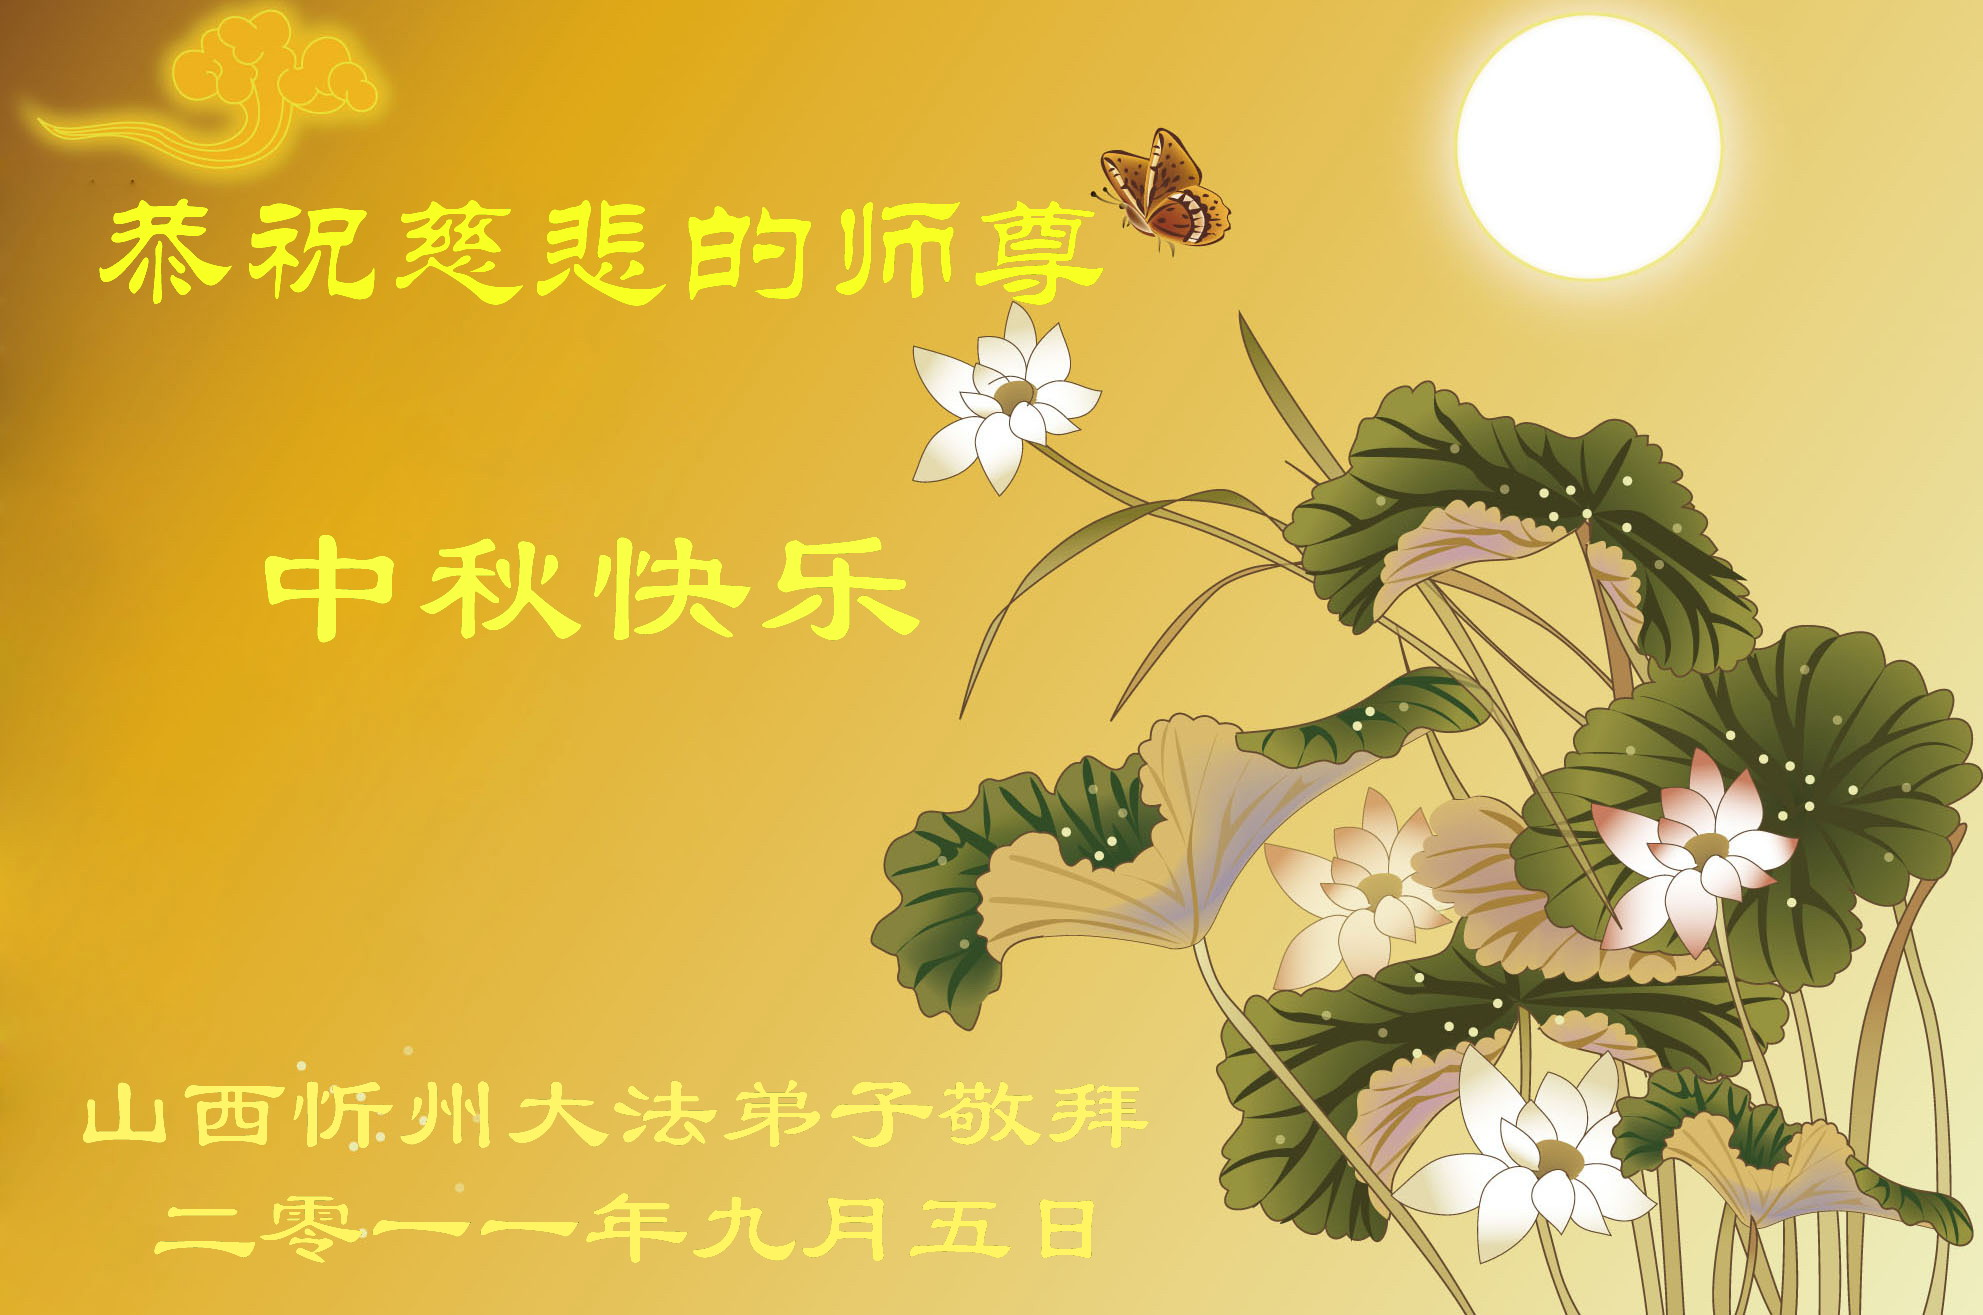 Falun dafa practitioners in north china respectfully wish master a practitioners in zhangjiakou hebei province respectfully wish revered master a happy mid autumn festival kristyandbryce Choice Image